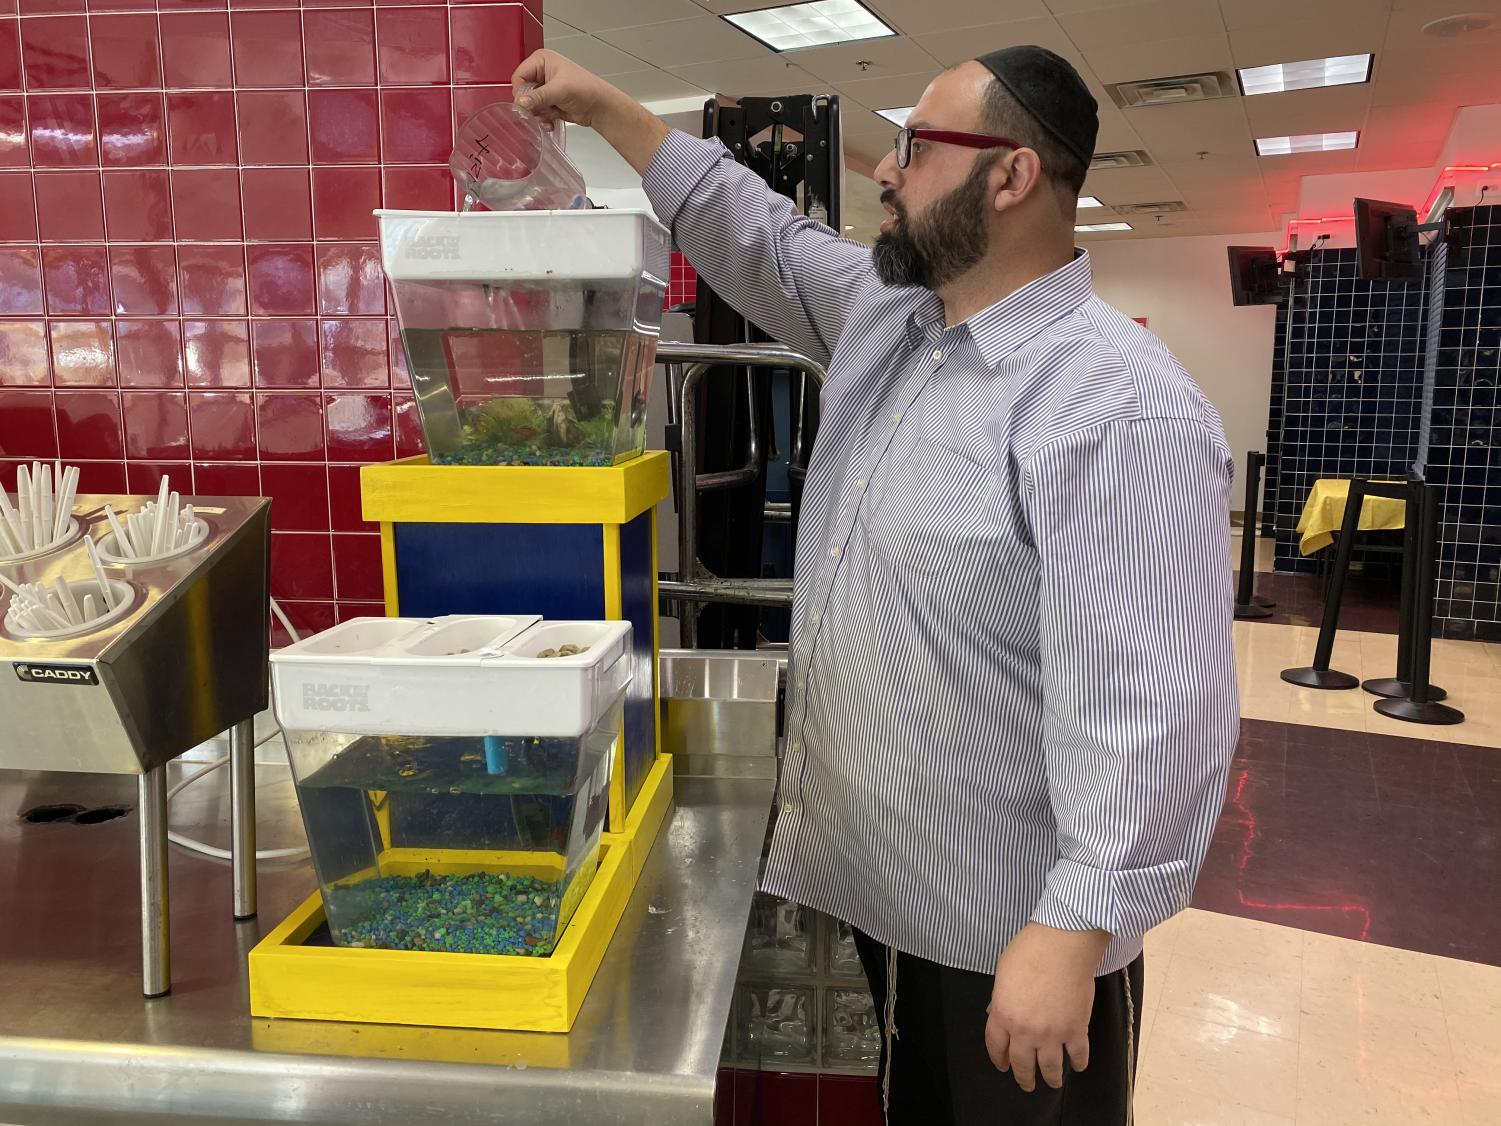 The cafeteria has been using aquaponics to make its produce, infusing STEM into the daily lives of JDS students who enter the lunch line each day.